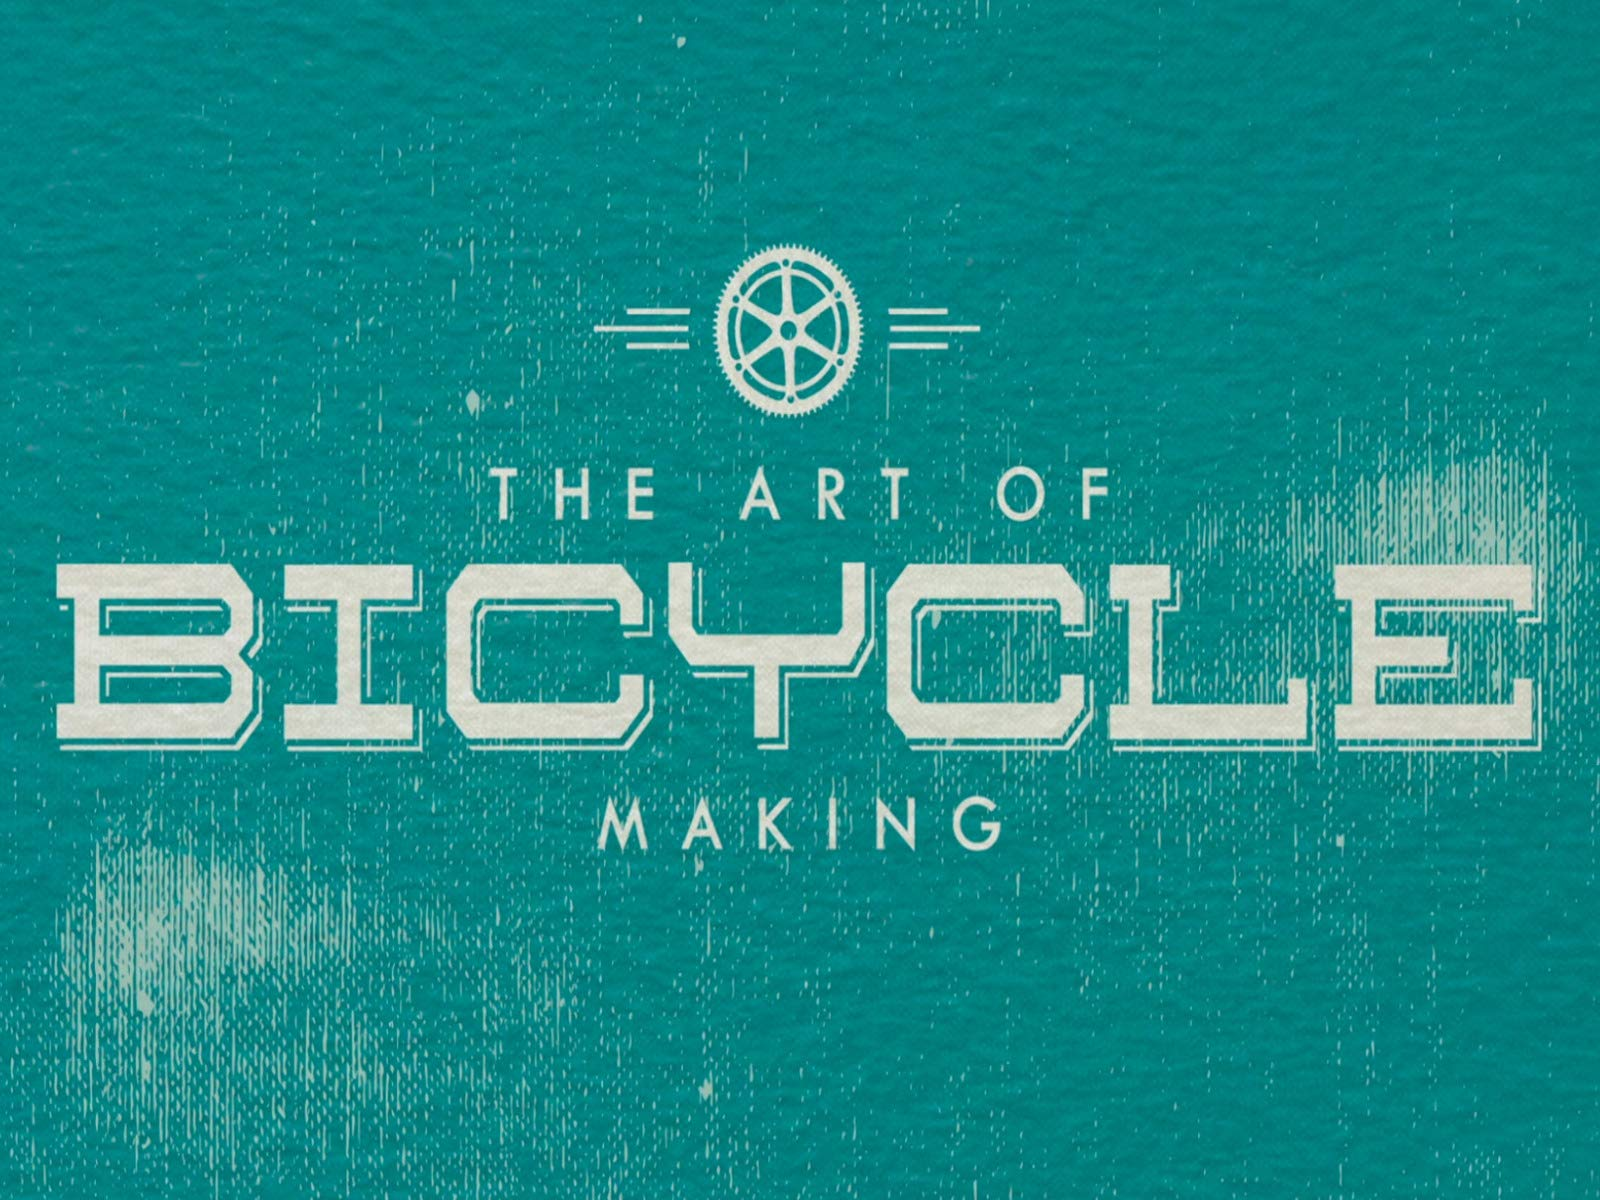 The Art of Bicycle Making - Season 1